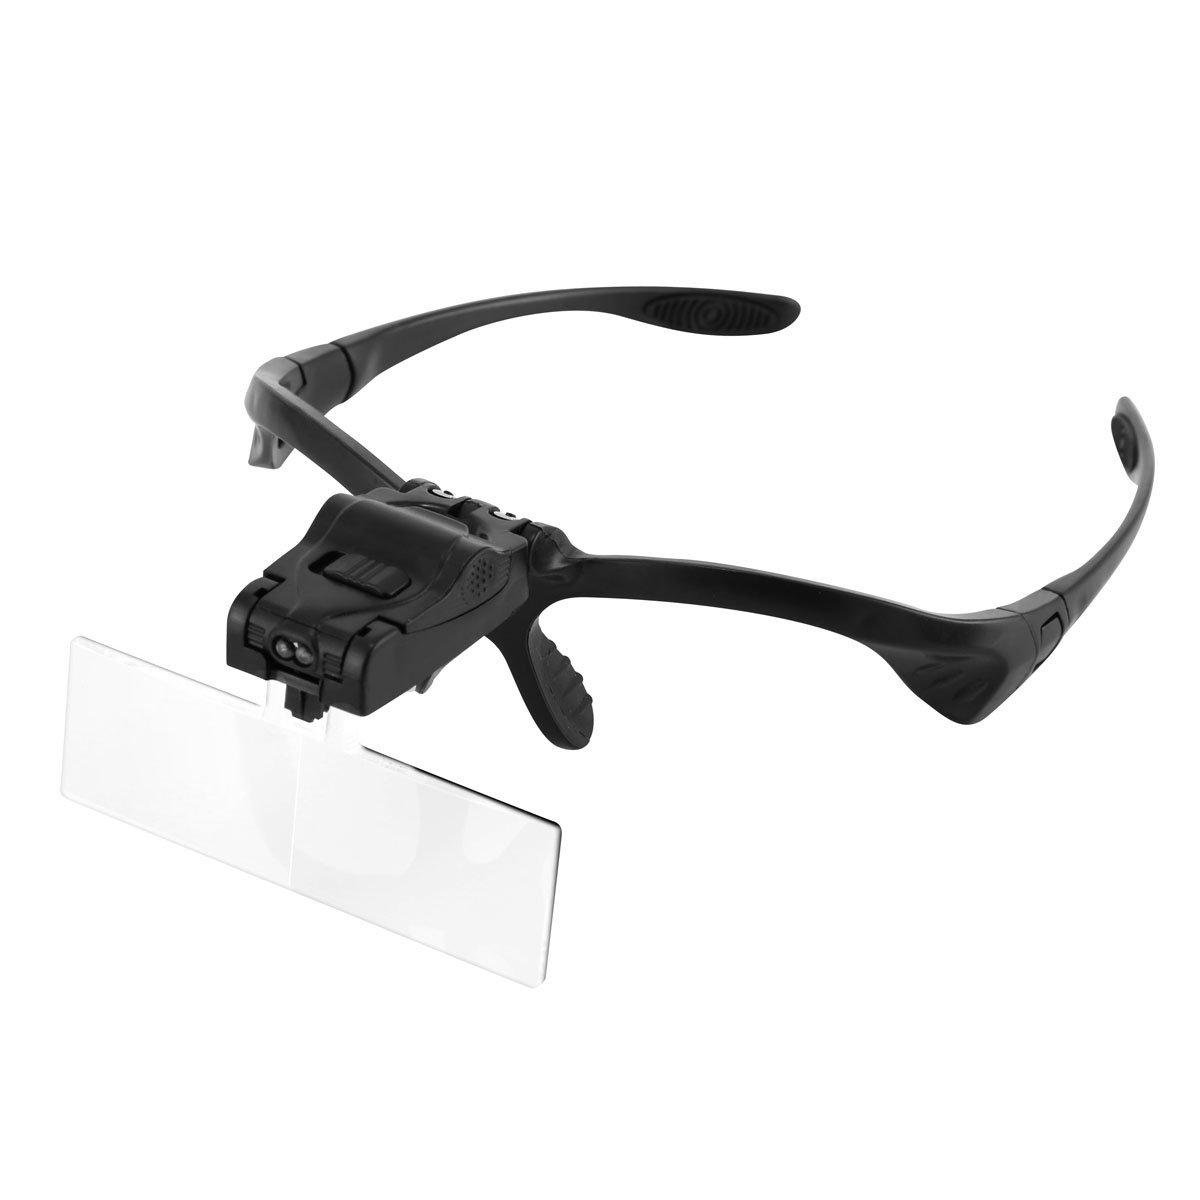 Headband Magnifier Magnifying Glasses with Light, SOONHUA Jeweler's Glasses Handsfree Reading with 2 LED Lamps and 5 Replaceable Lenses (1.0X, 1.5X, 2.0X, 2.5X, 3.5X)